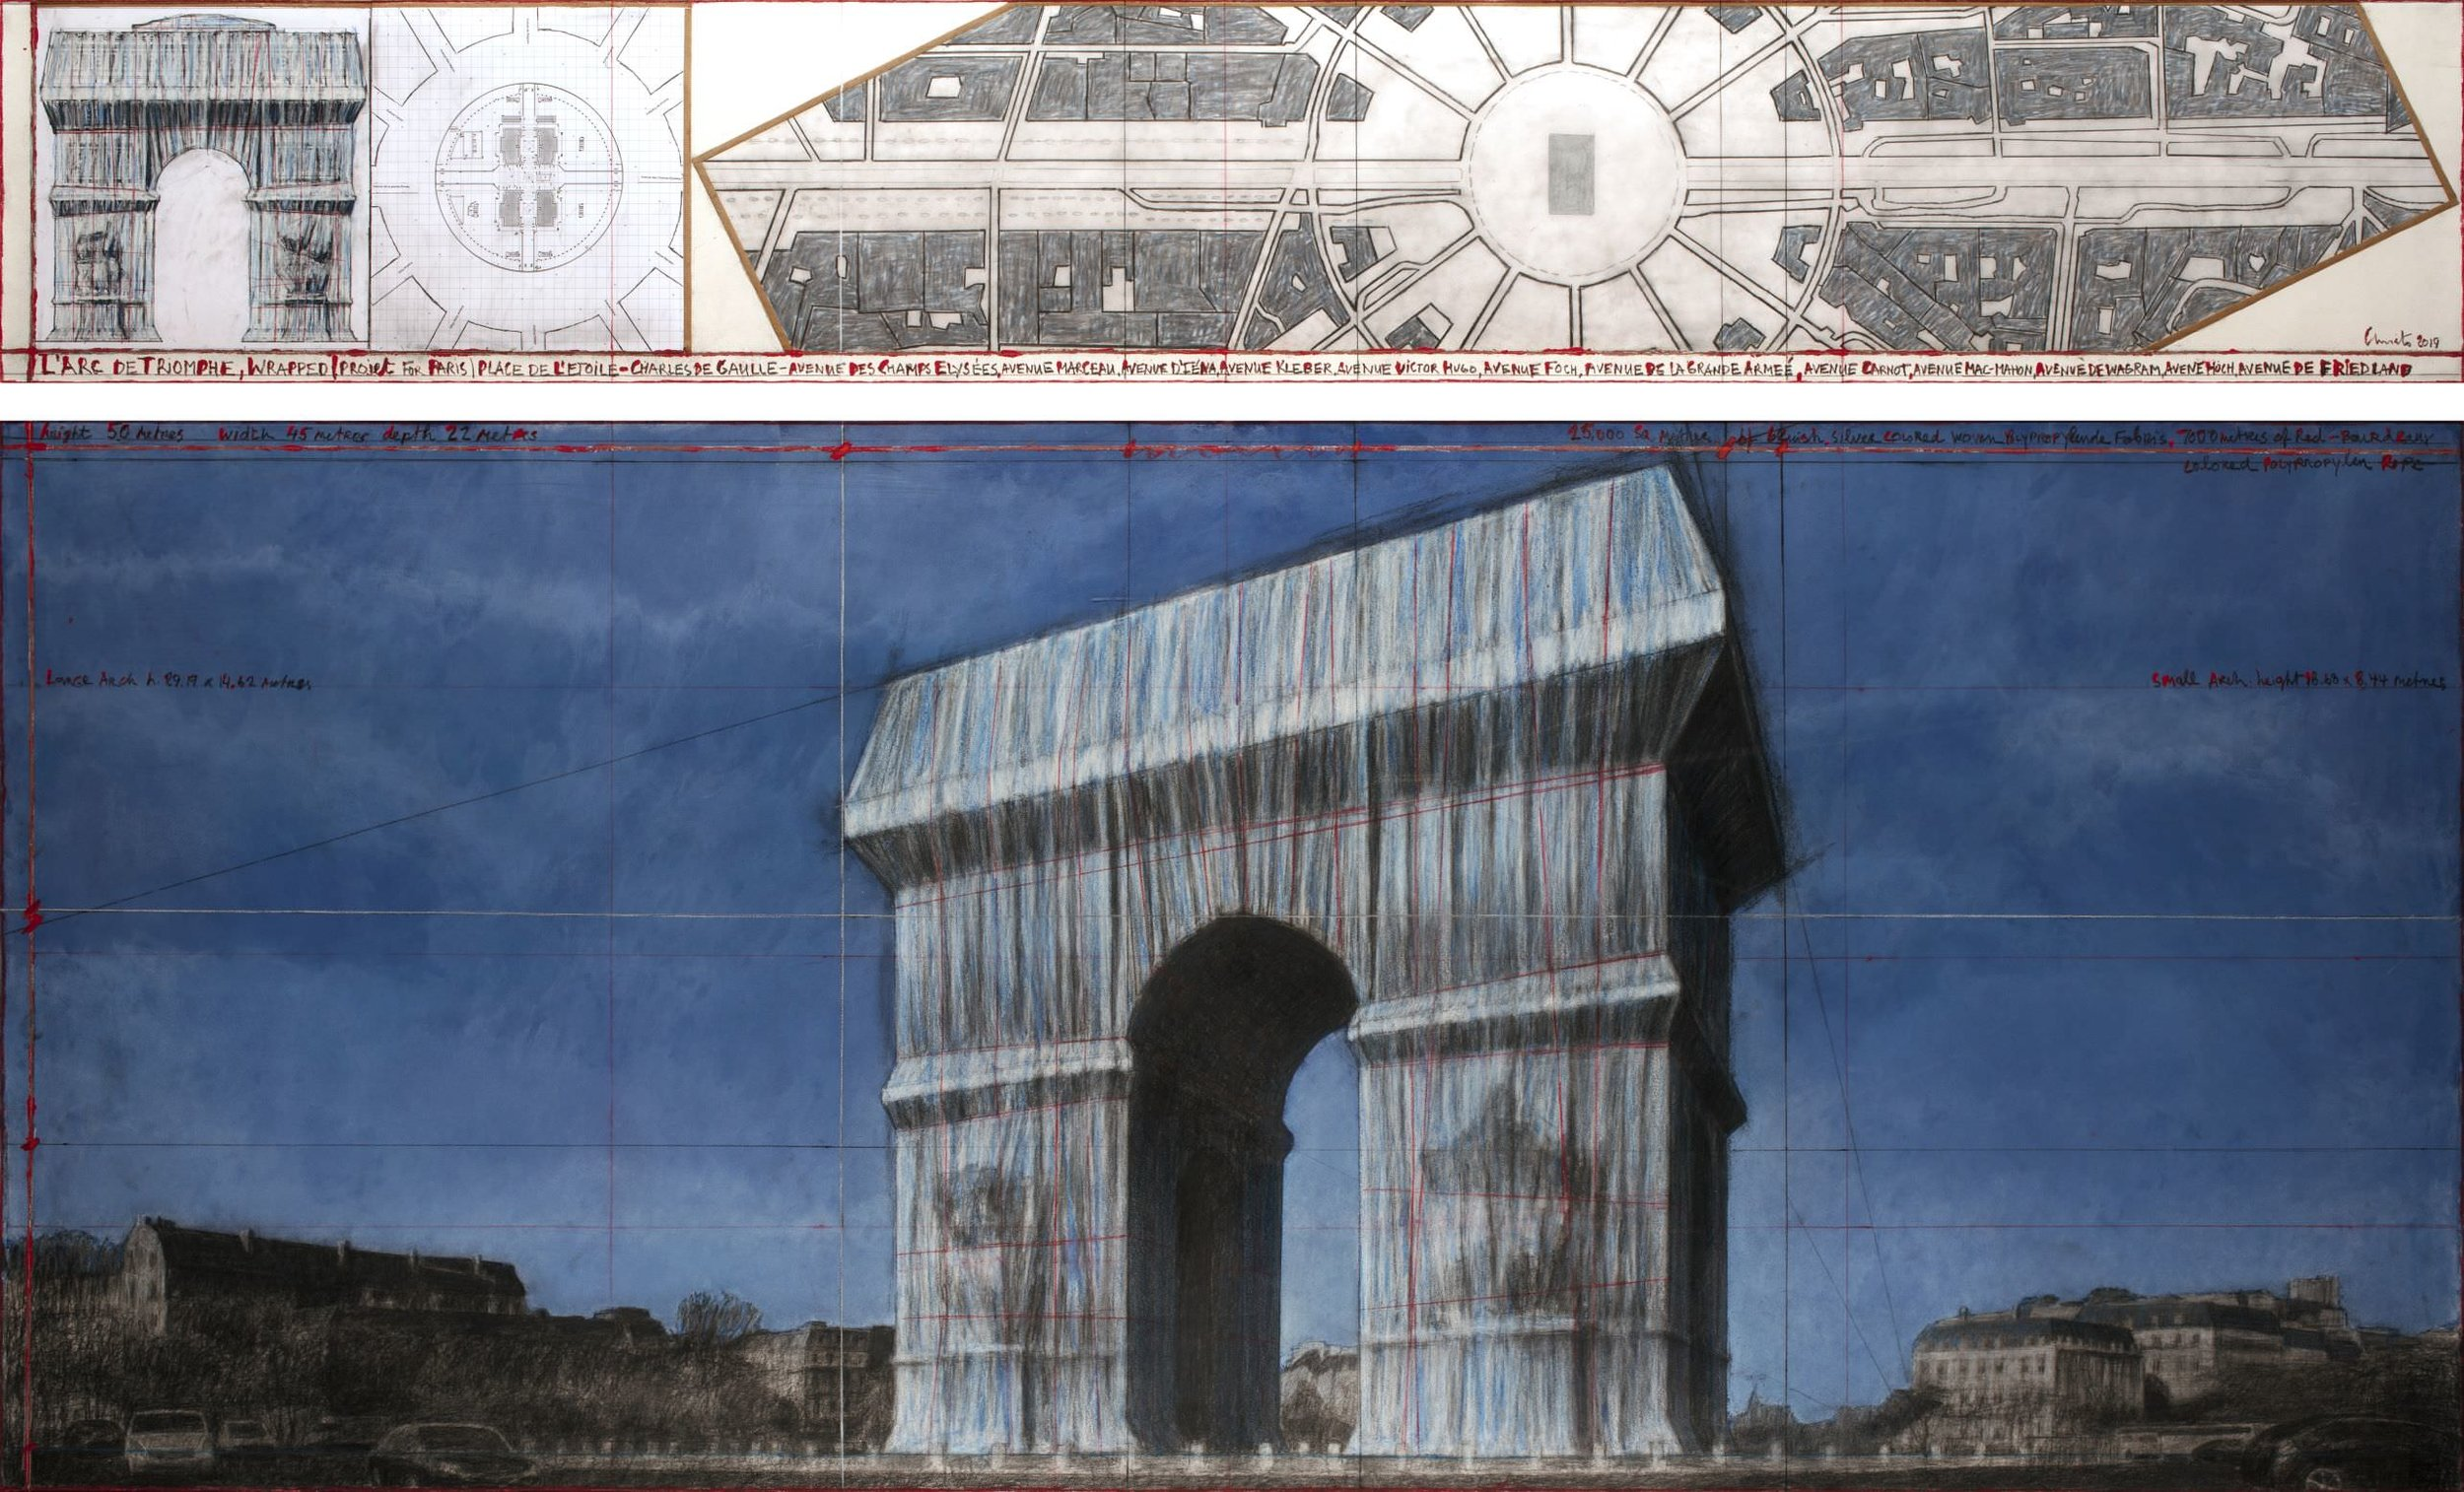 "Christo, L'Arc de Triomphe, Wrapped (Project for Paris) Place de l'Etoile – Charles de Gaulle. Drawing 2019 in two parts, 15 x 96"" and 42 x 96"" (38 x 244 cm and 106.6 x 244 cm). Pencil, charcoal, pastel, wax crayon, enamel paint, architectural and topographic survey, hand-drawn map on vellum and tape. Photo: André Grossmann © 2019 Christo"